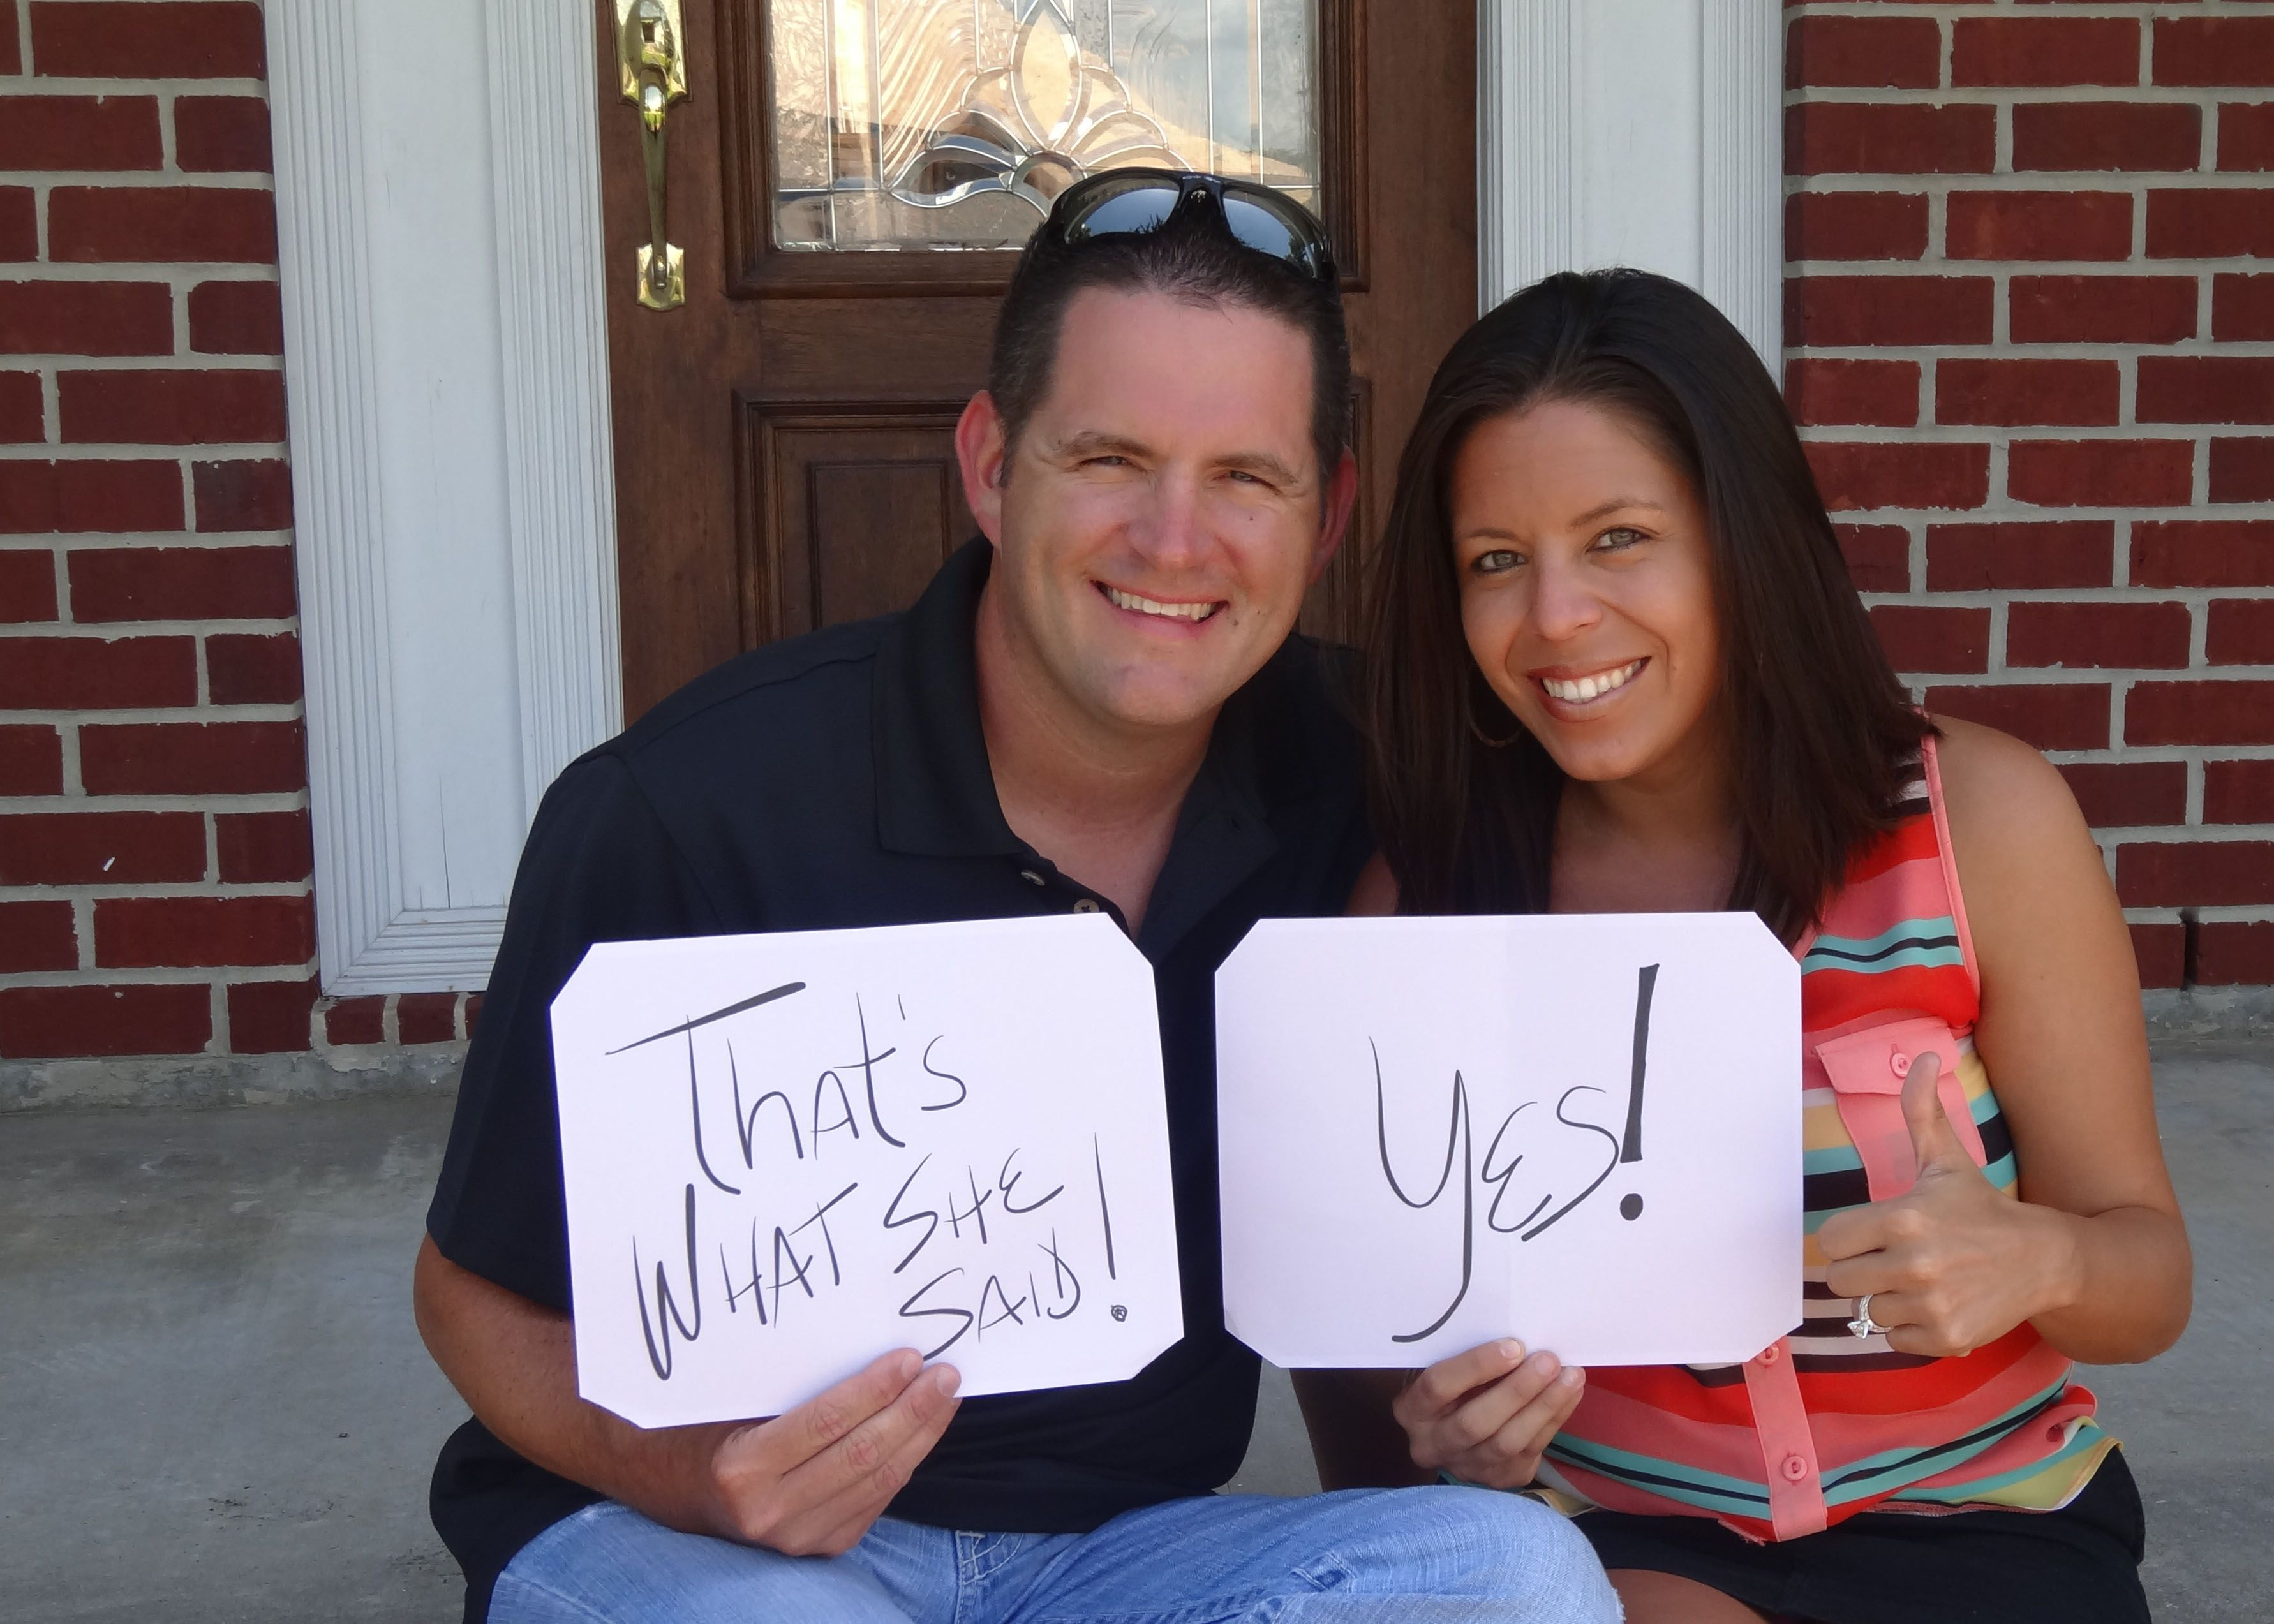 Funny Engagement Announcement Ideas Swla Wedding Day Bliss